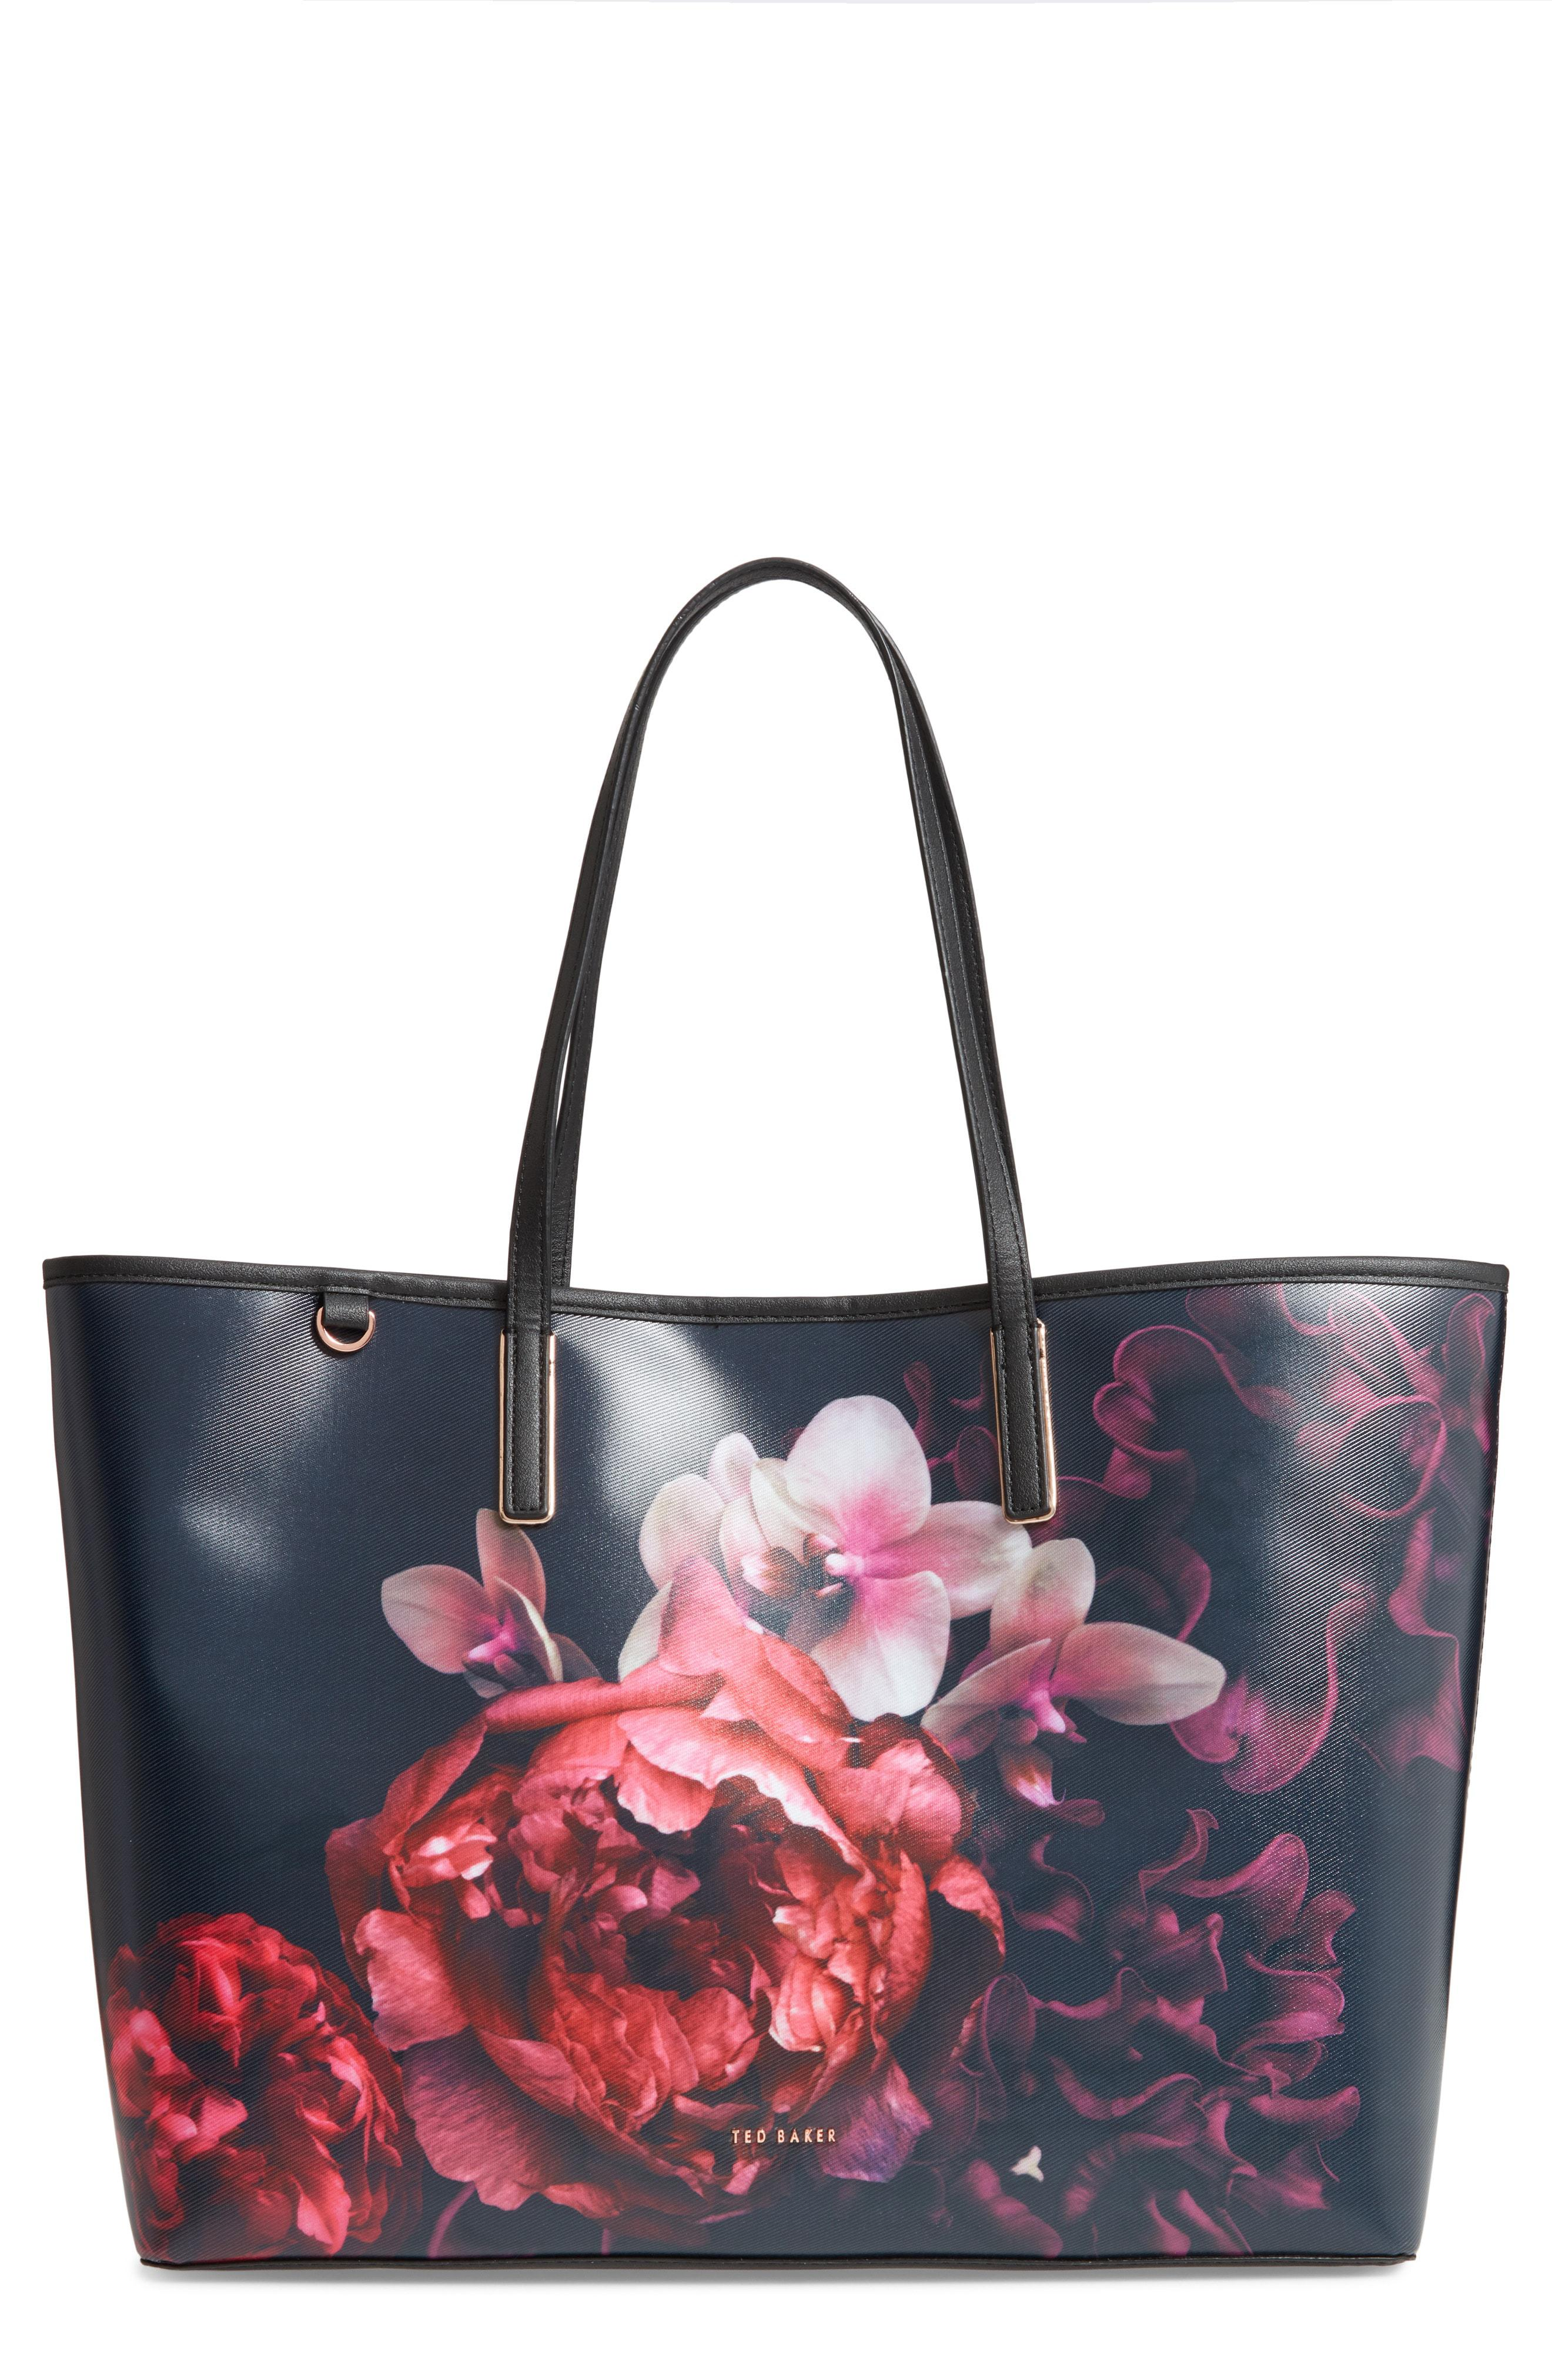 TED BAKER Splendour Floral Printed Large Icon Shopper Tote Bag